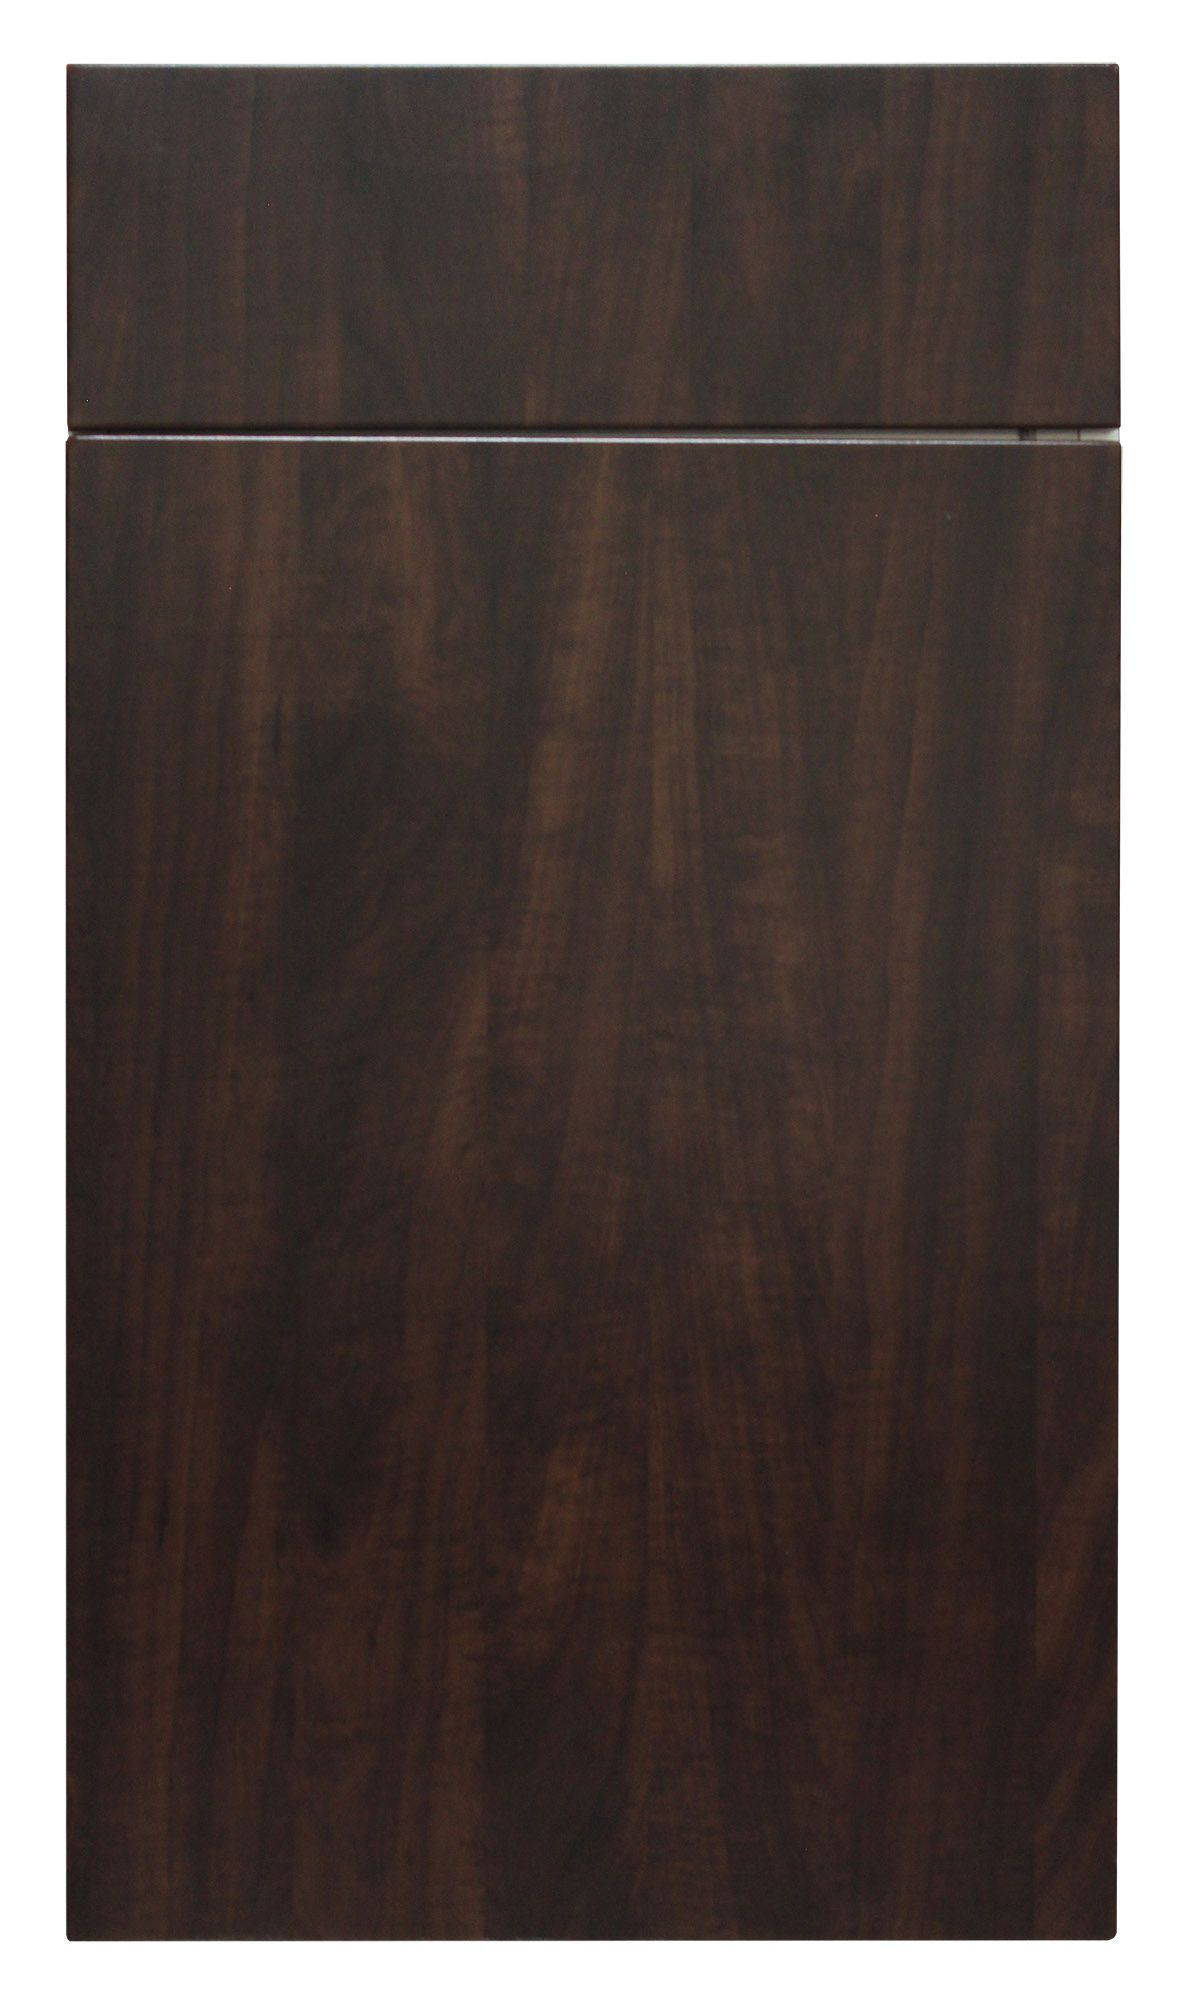 Chocolate Pear A Sg1020 Kitchen Cabinets South El Monte Kitchen Cabinets Los Angeles Cabinets San Diego Wholesale Cabinets Online German Design Wood Patterns Metal Design